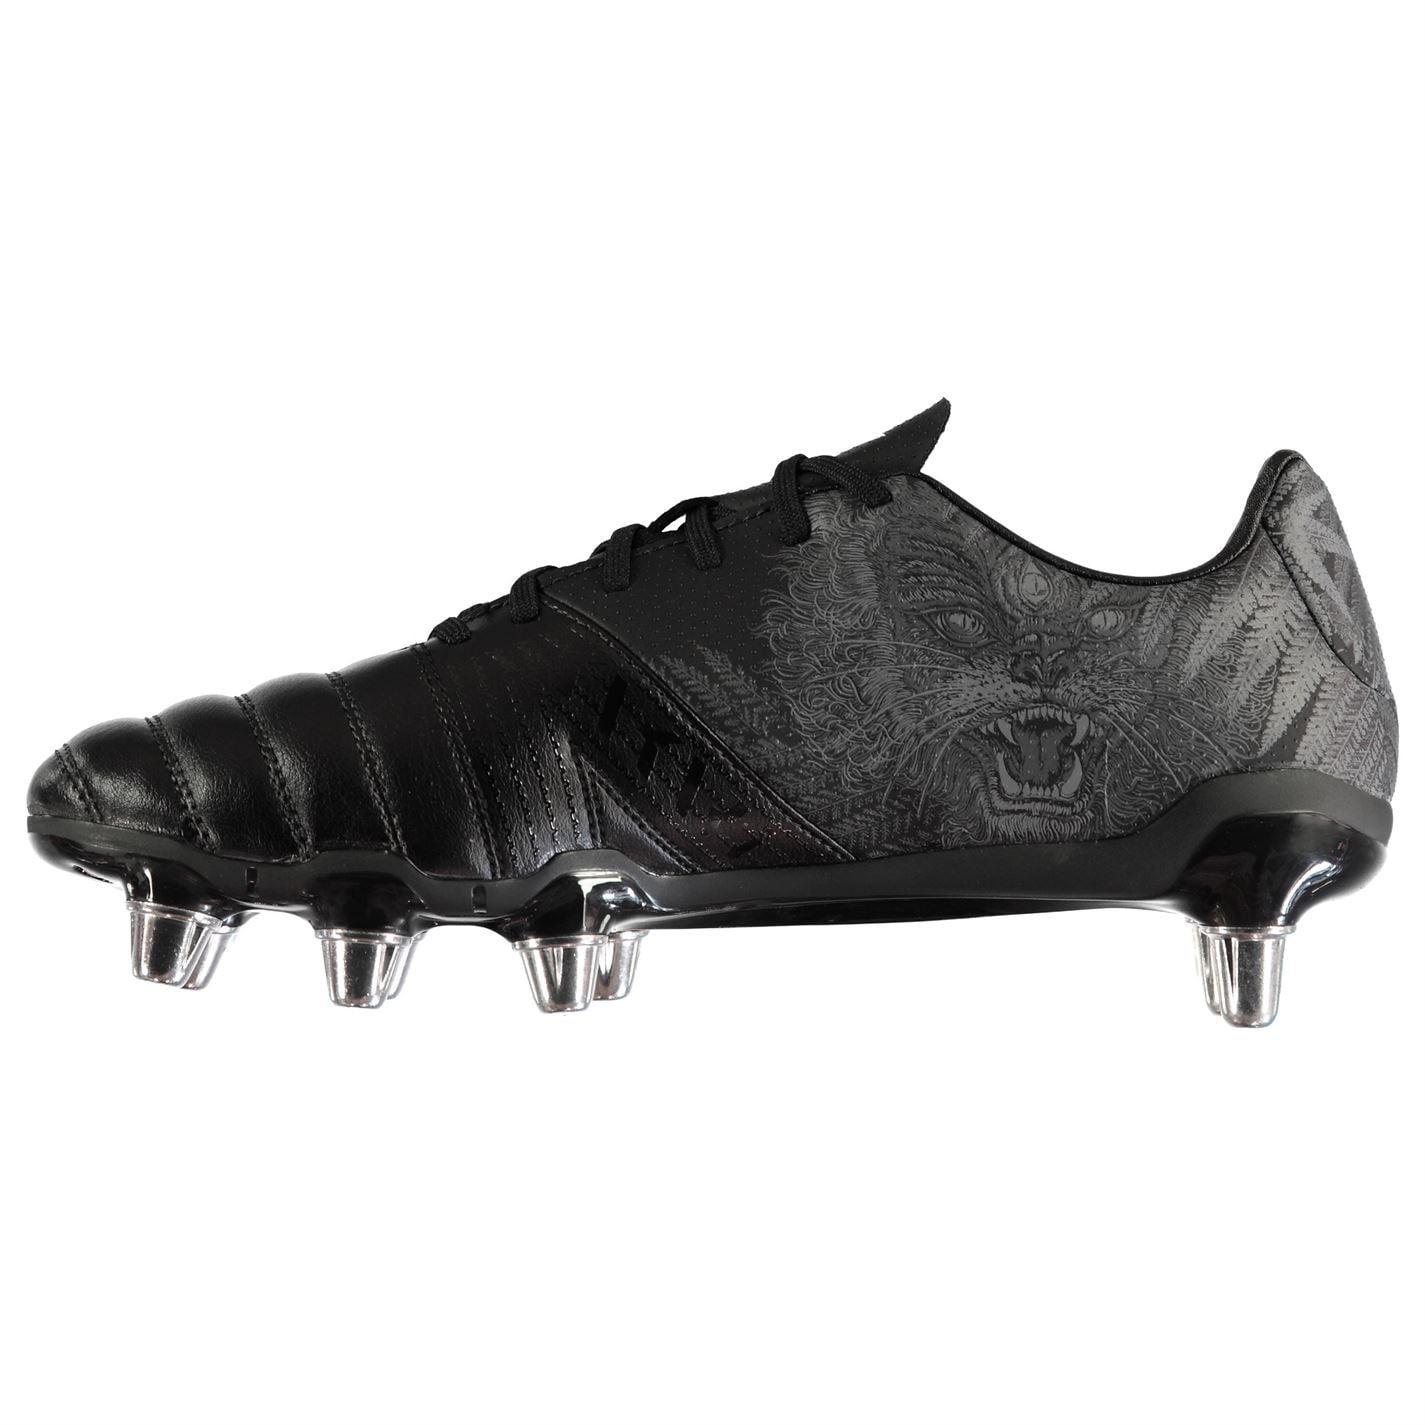 adidas Kakari SG Rugby Boots Mens Black Football Cleats Sports Outdoor Footwear